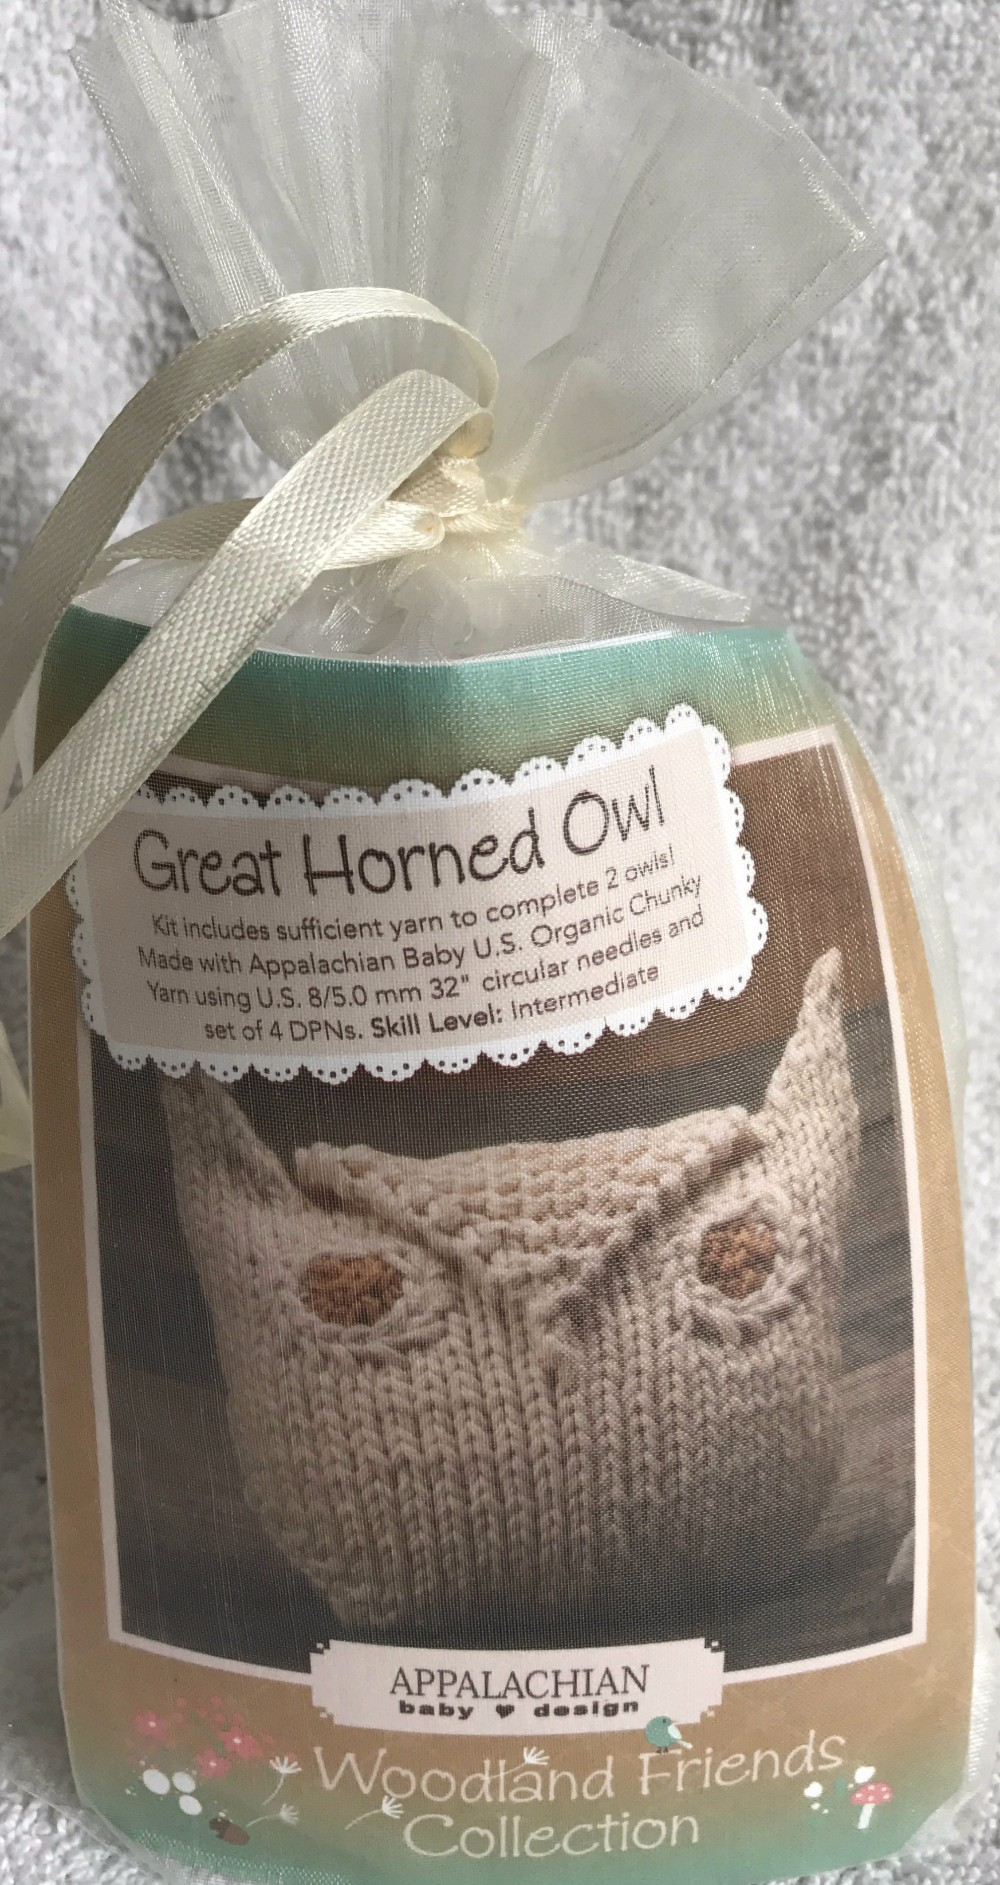 Great Horned Owls Kit by Appalachian Baby Design